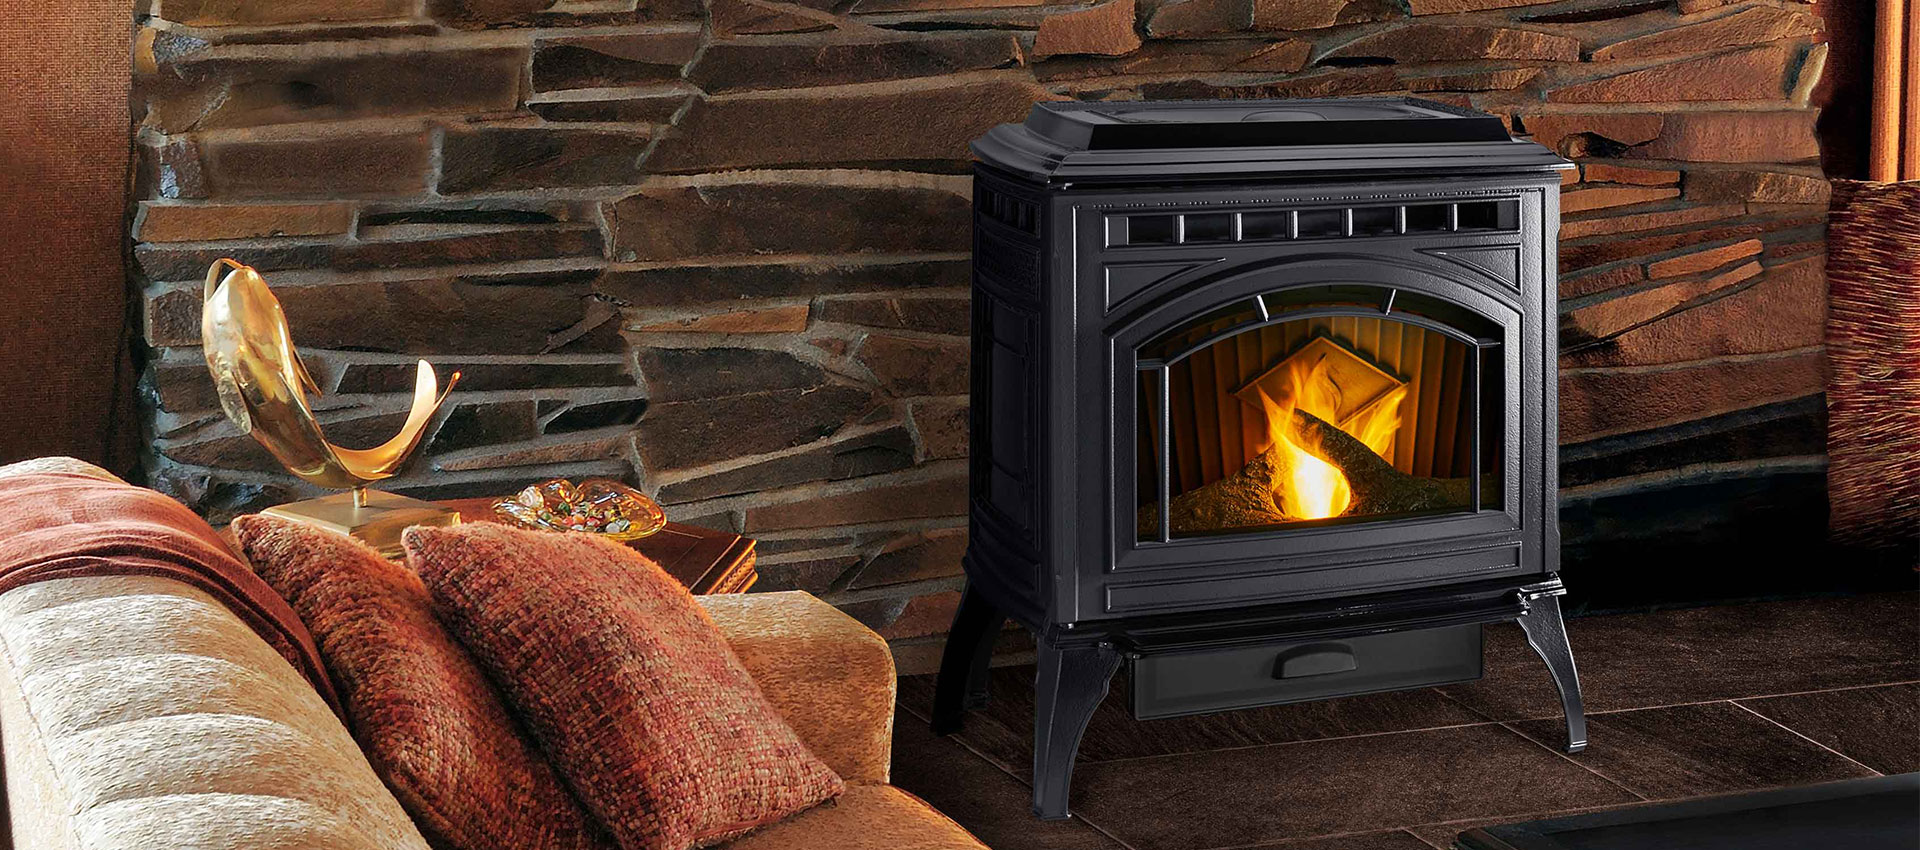 Mountain Home Stove & Fireplace – Steamboat Springs